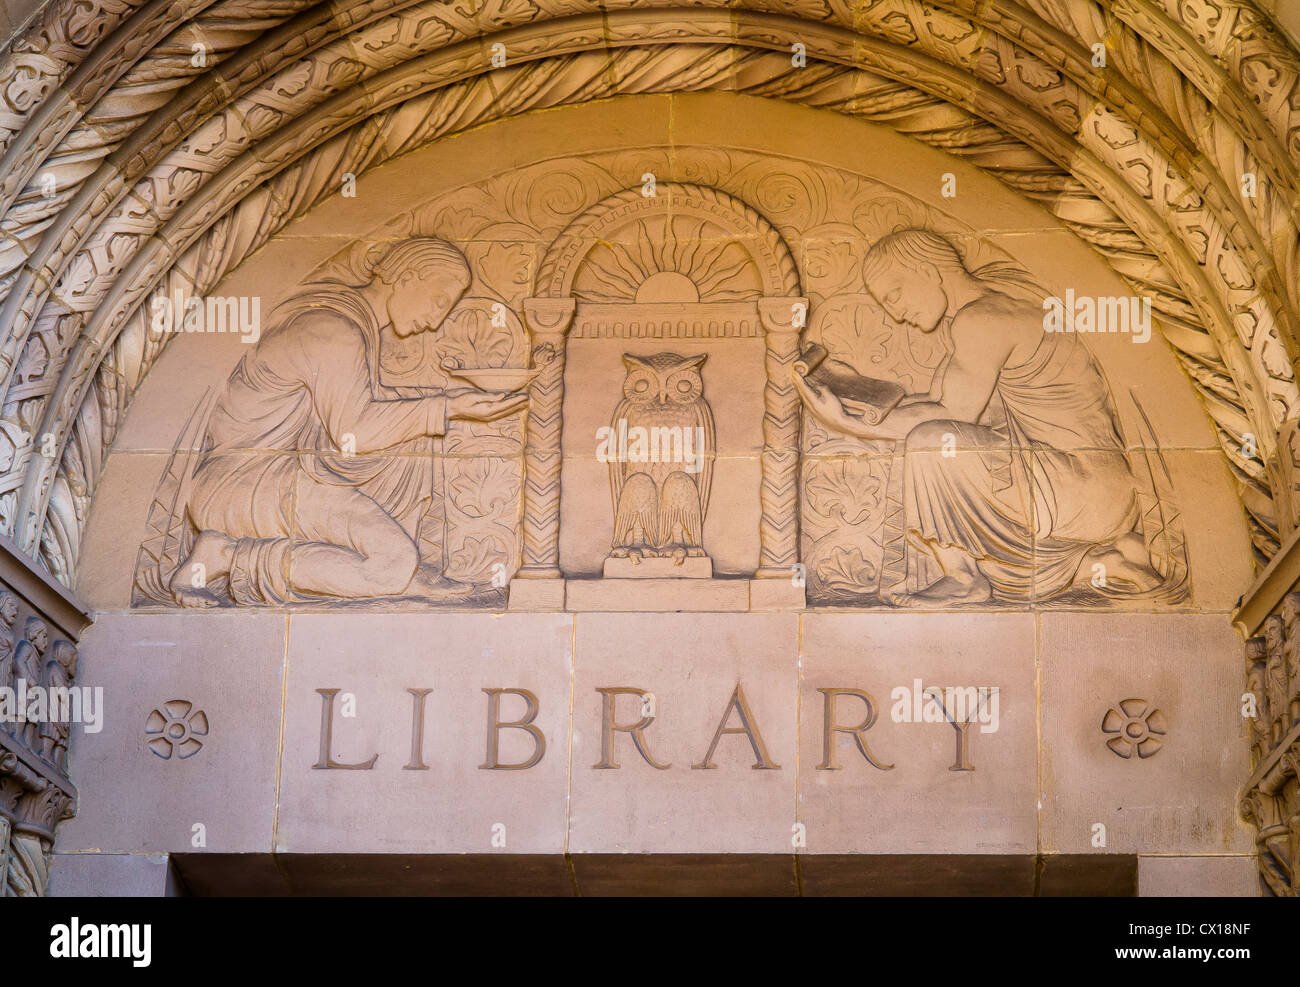 LOS ANGELES, CALIFORNIA, USA - Powell Library sign at UCLA campus. - Stock Image